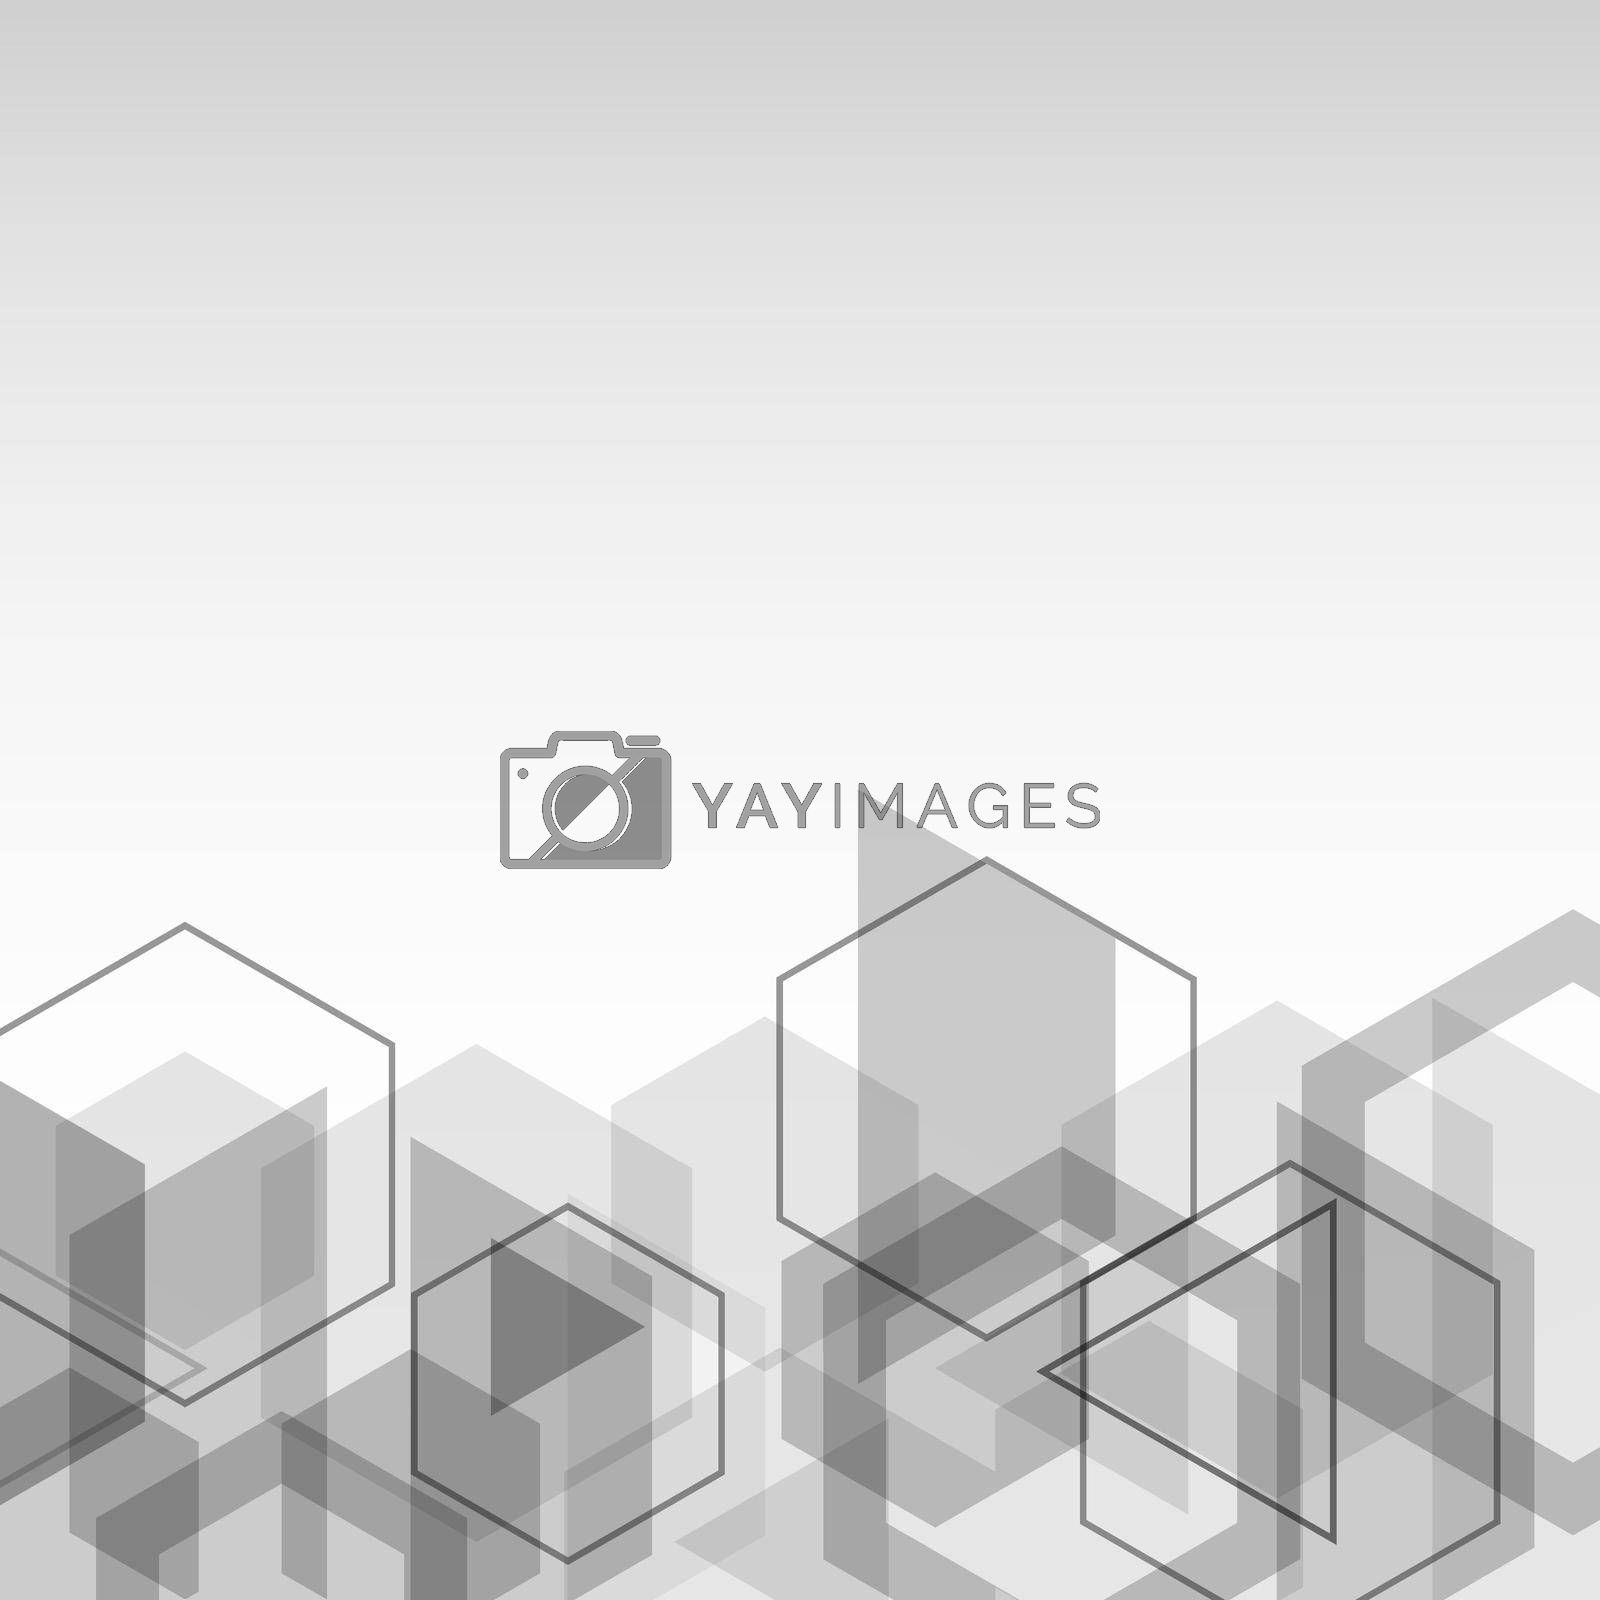 Royalty free image of Abstract background with gray cubes geometric shape by punsayaporn